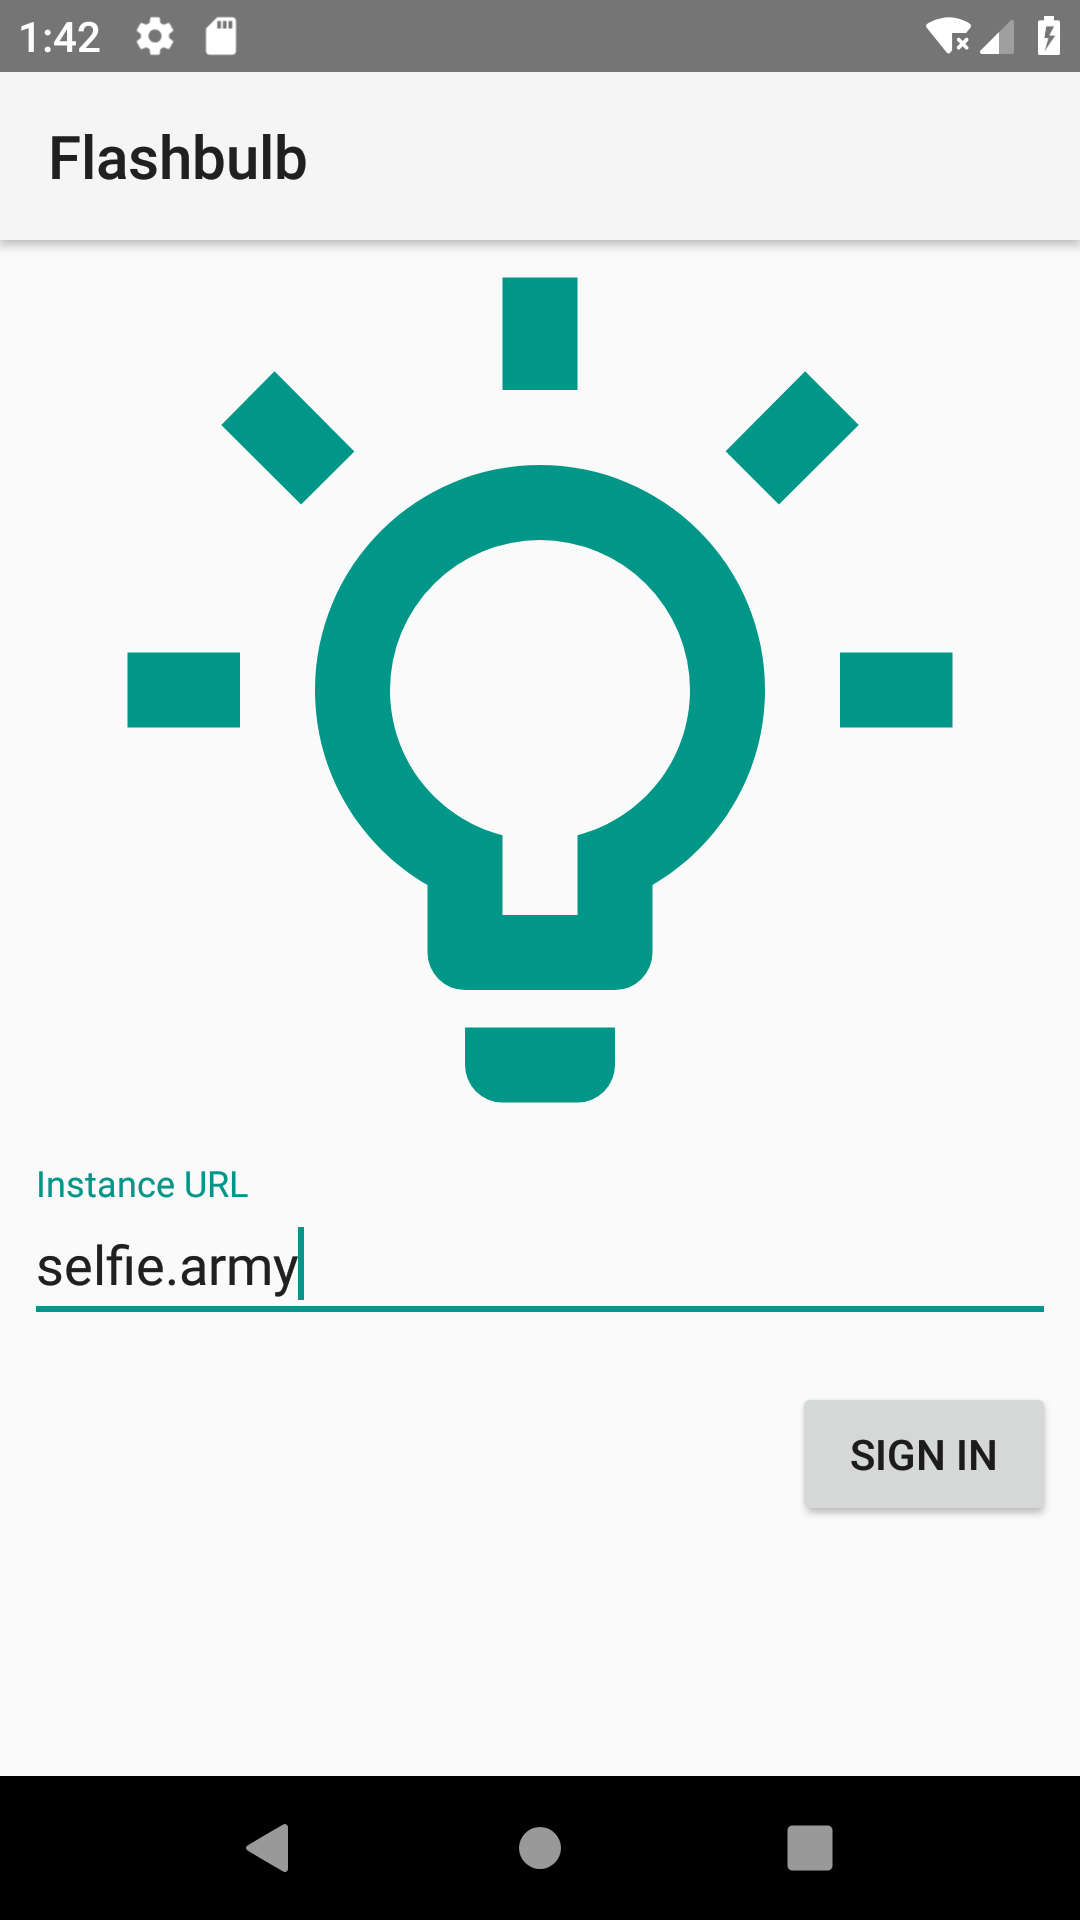 Screenshot of an Android app. 'Flashbulb' in the app bar name.           A lightbulb logo before a text field named 'Instance URL'.           The text 'selfie.army' is filled in.           A sign in button after the text field.